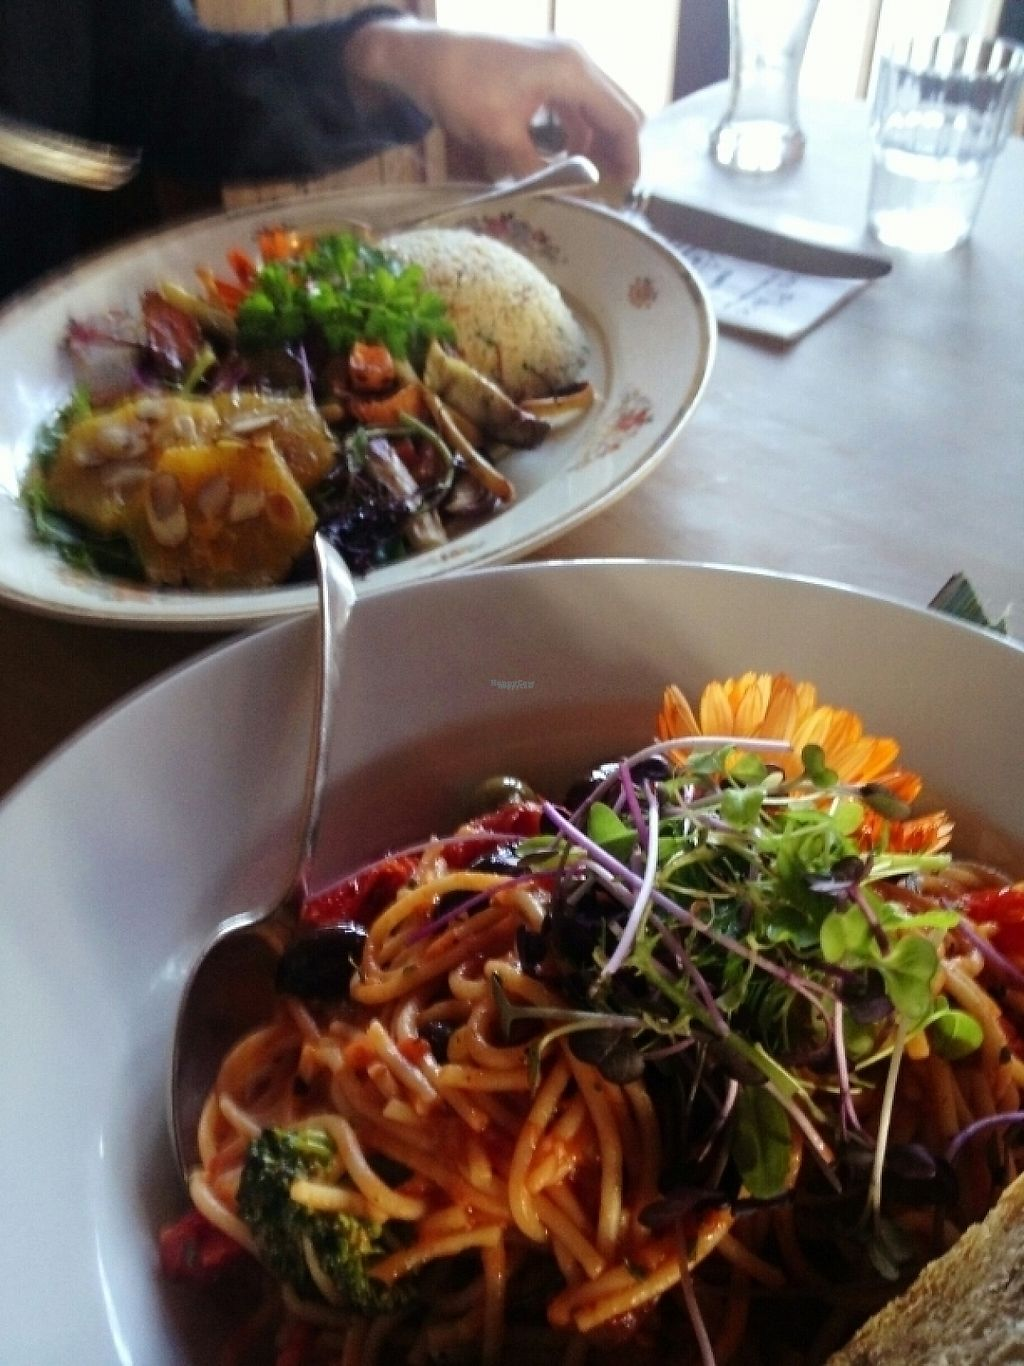 """Photo of Fleurs Place  by <a href=""""/members/profile/Fontalamh"""">Fontalamh</a> <br/>2 vegan dishes <br/> April 16, 2017  - <a href='/contact/abuse/image/40731/248600'>Report</a>"""